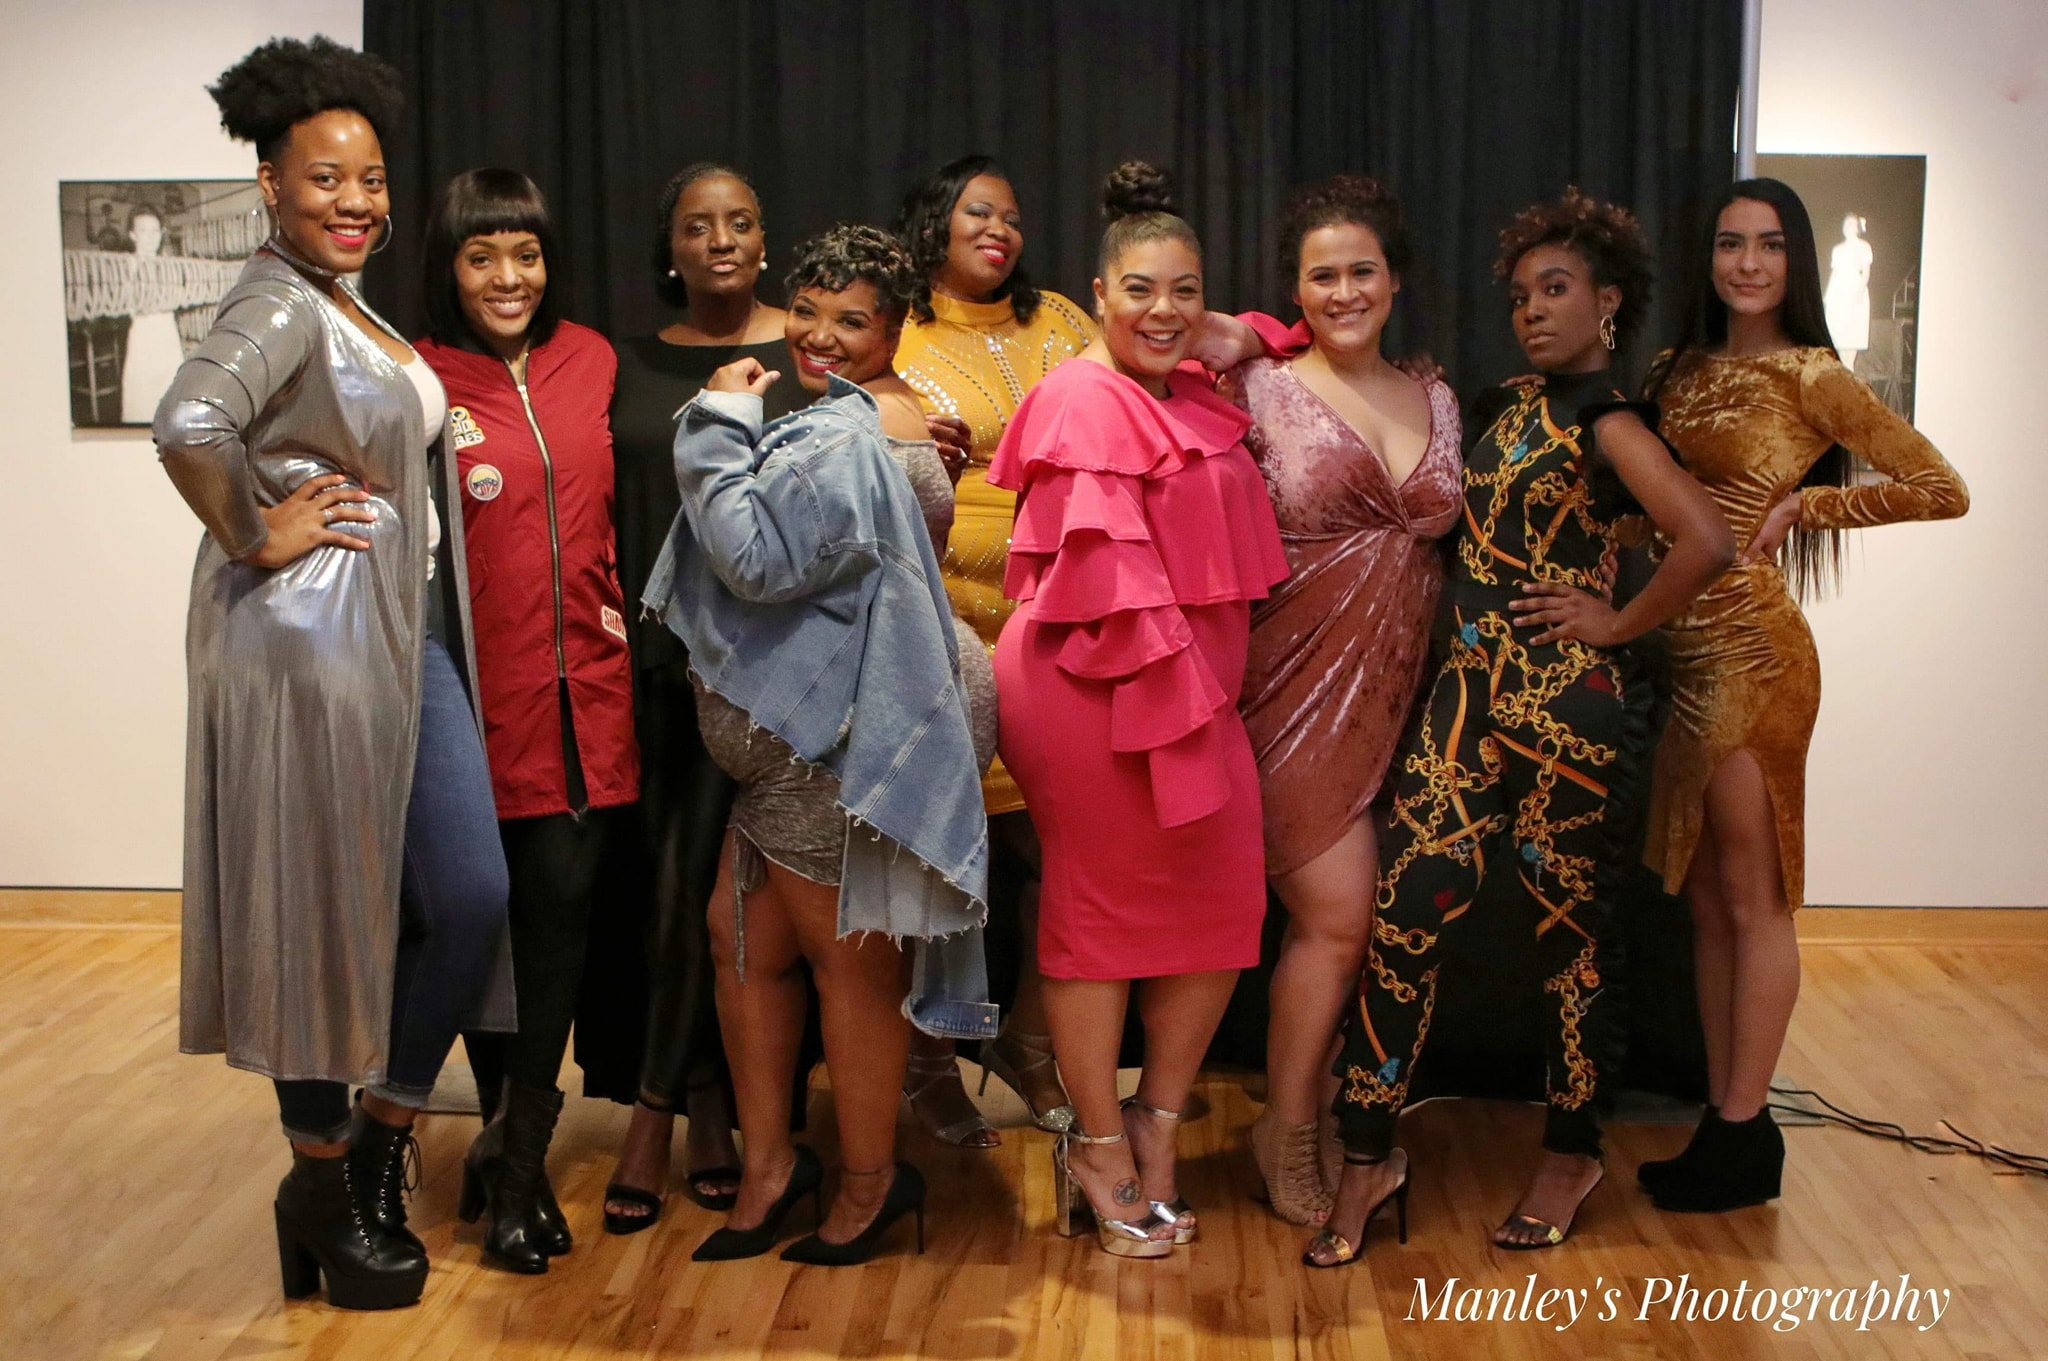 Models with  The FaShaenista Files  owner LaShae Settles Photo credit: Manley's Photography